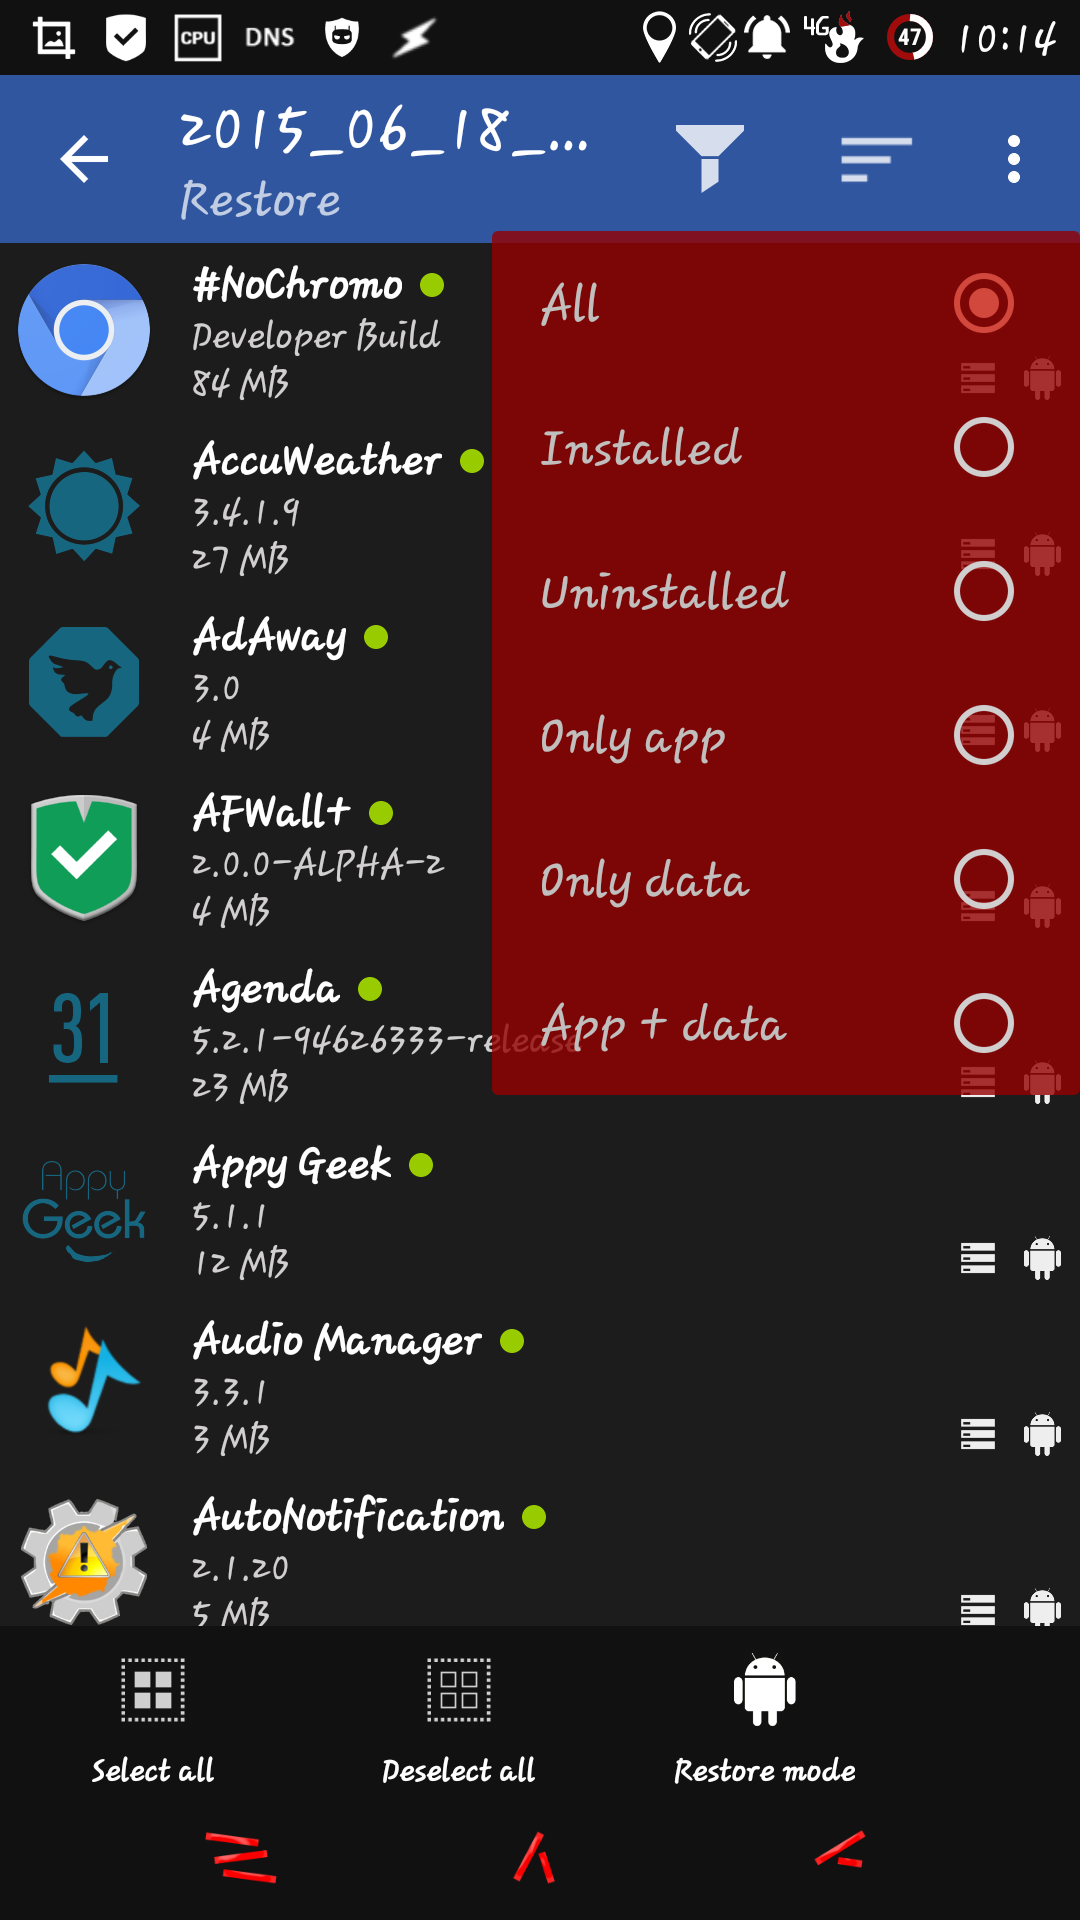 [APPLICATION ANDROID - Backup+] Sauvegarde d'applications (Comme Titanium backup) 14347245762514